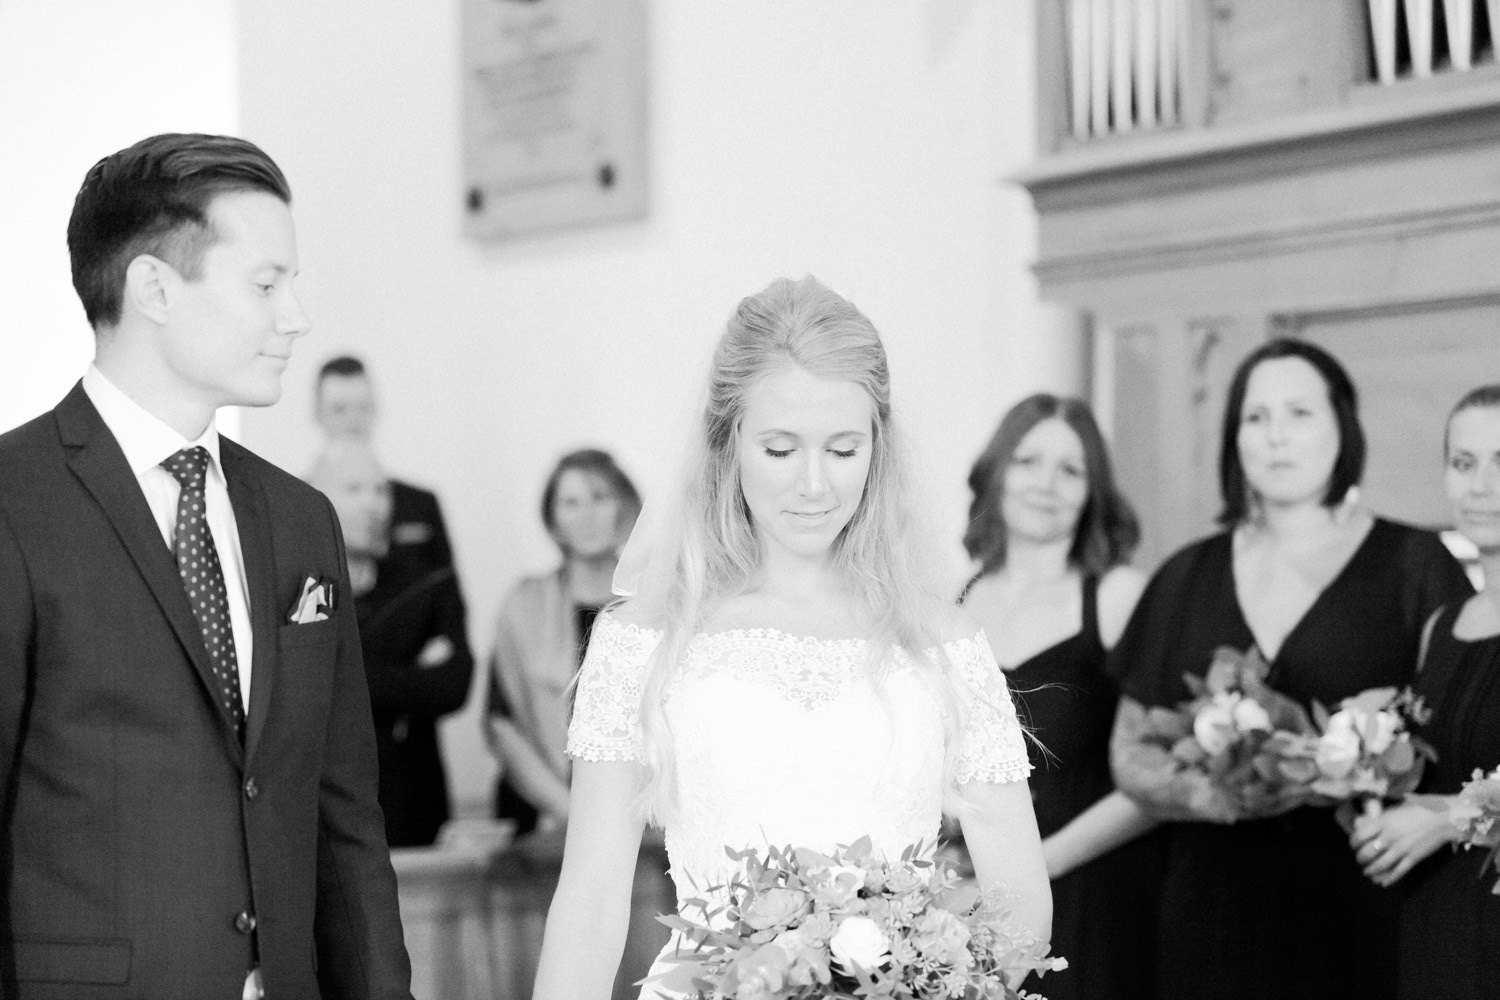 043-sweden-vidbynäs-wedding-photographer-bröllopsfotograf.jpg